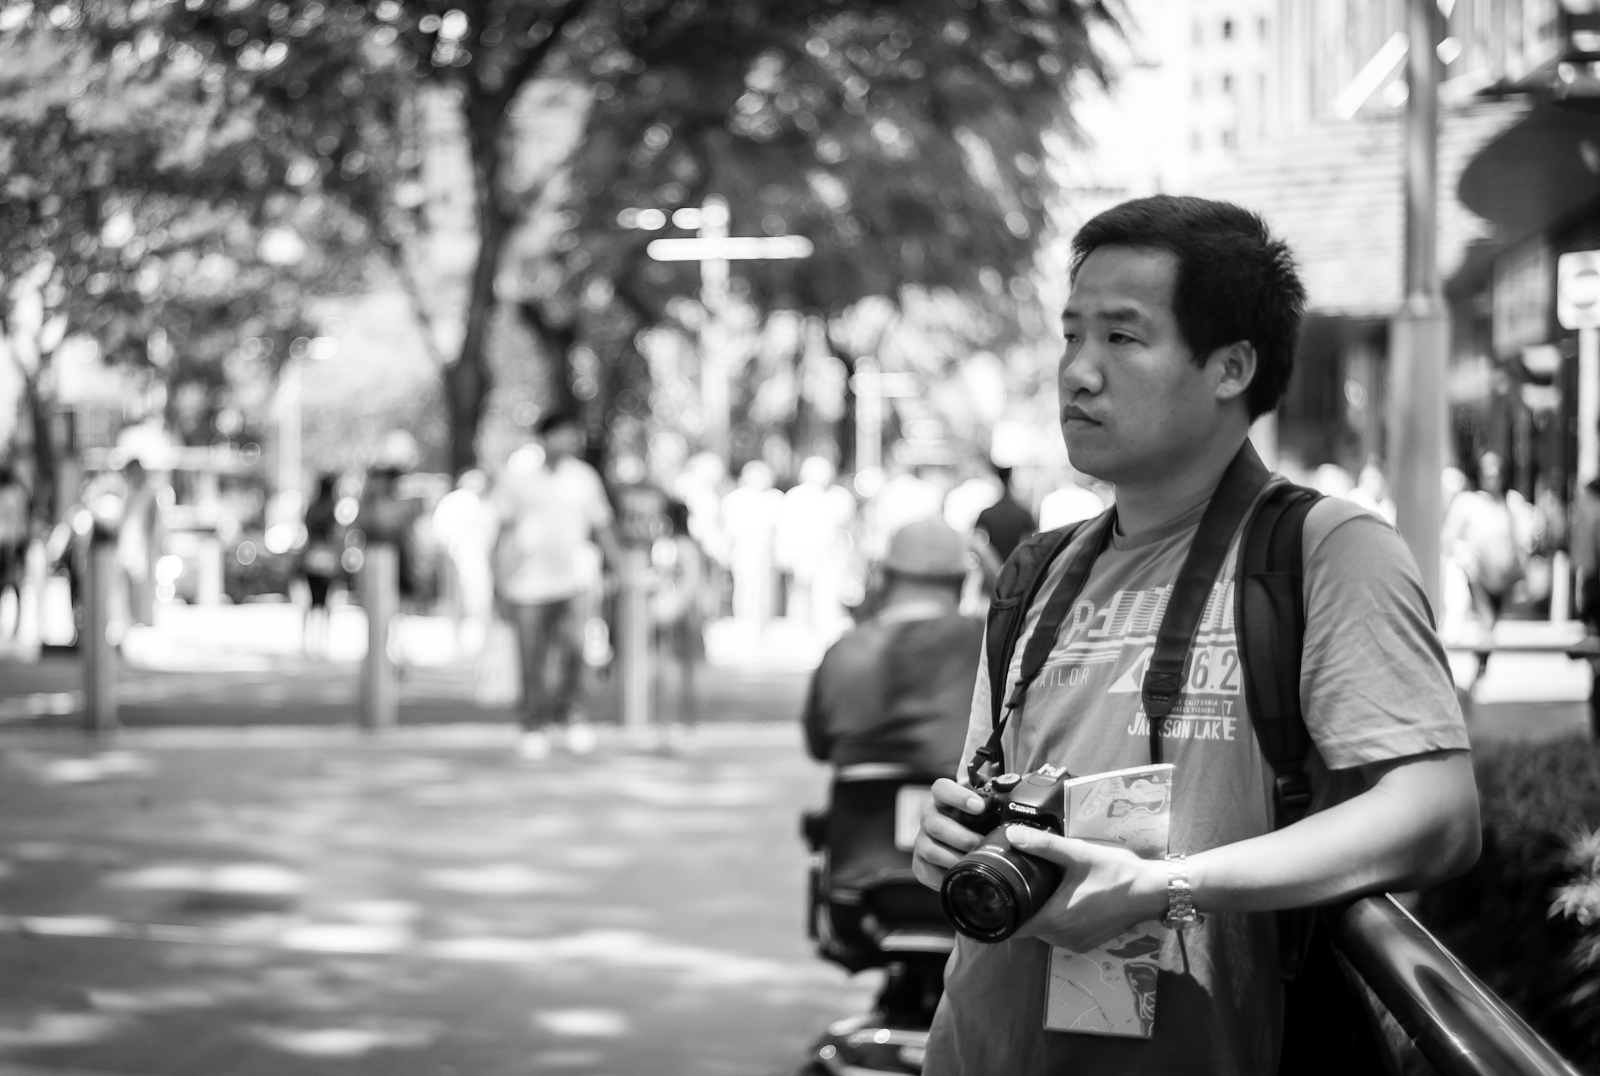 Street photography - tourist photographing in Orchard Road